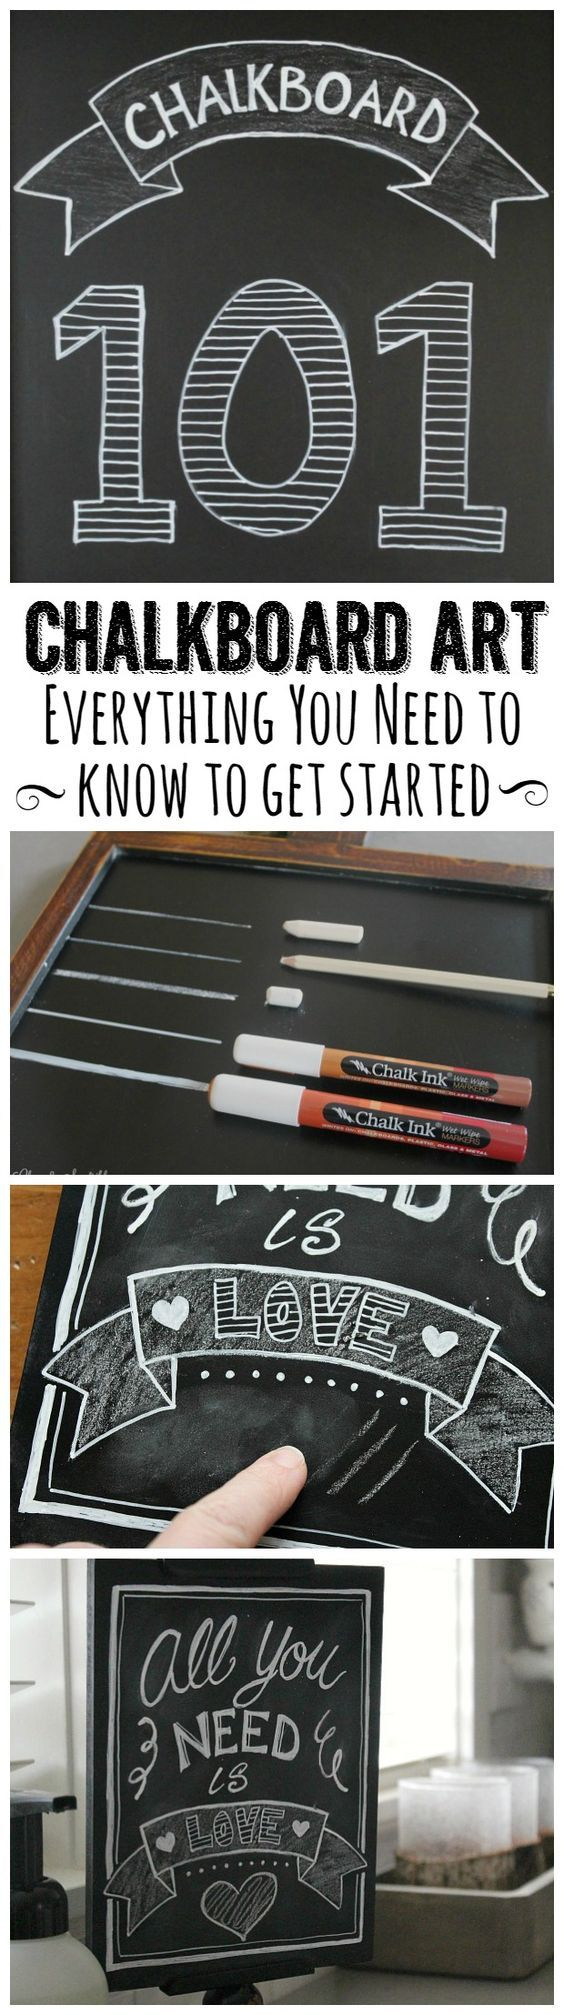 Great tips for creating your own chalkboard art!  Everything you need including how to get rid of ghosting, what tools to use, and ideas to get started!